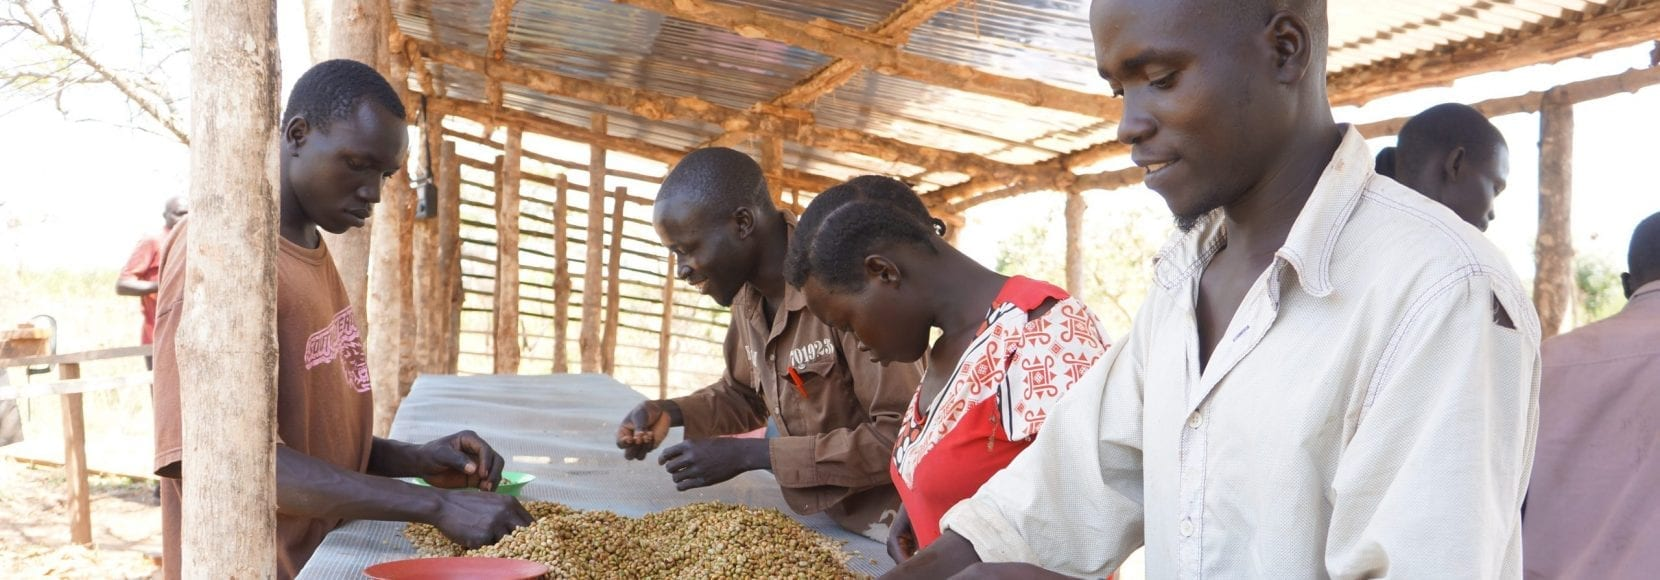 Group of people picking through coffee beans